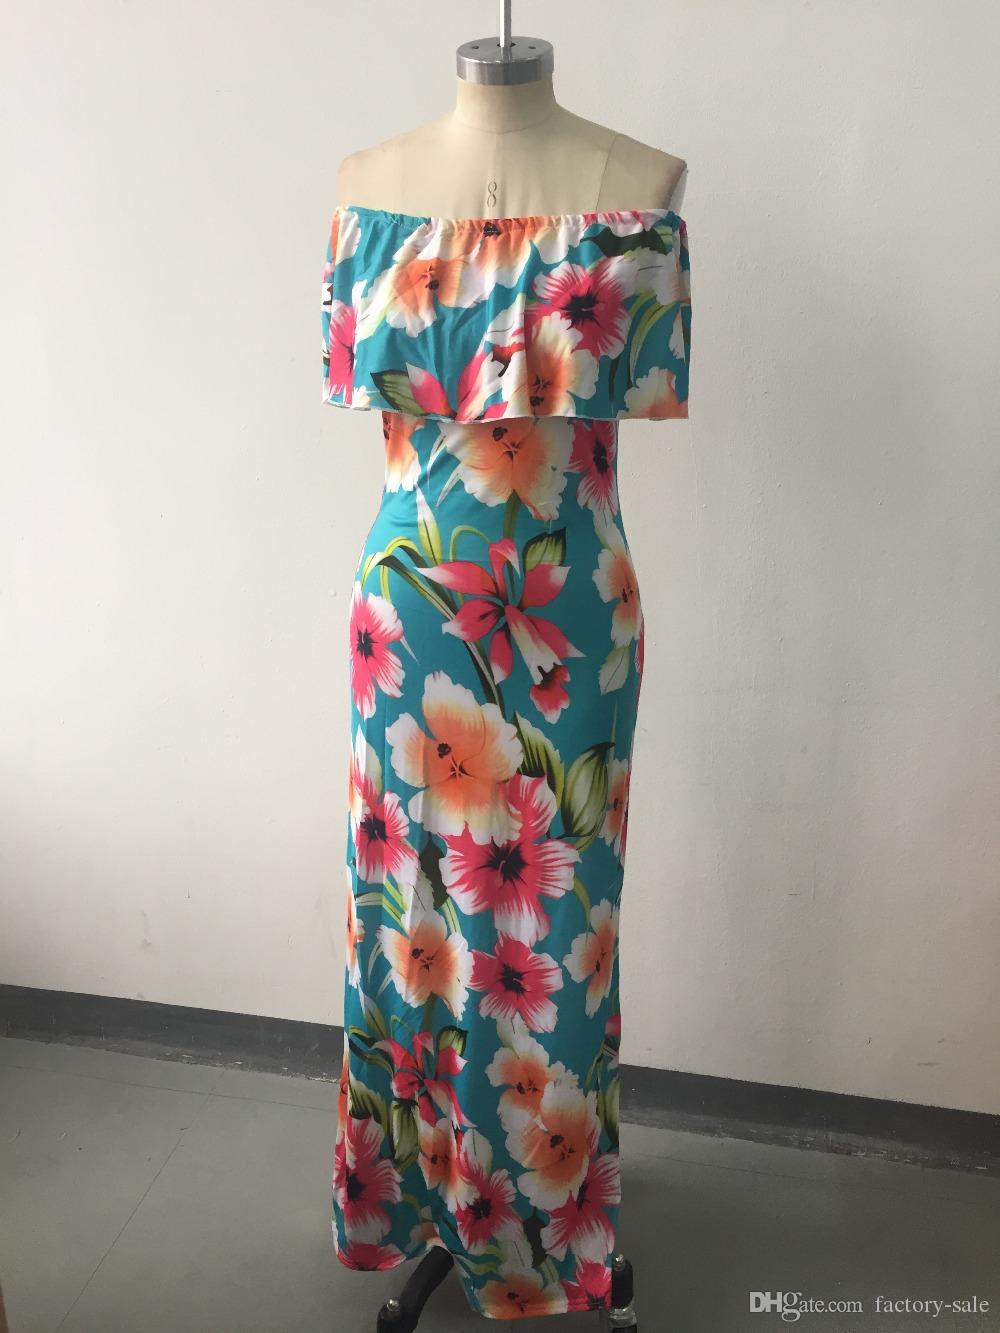 Cheap Summer Maxi Floral Printed Dresses Women Long Dresses 2017 Off the Shoulder Beach Dresses Sheath Bodycon Floor-Length Holiday FS1179